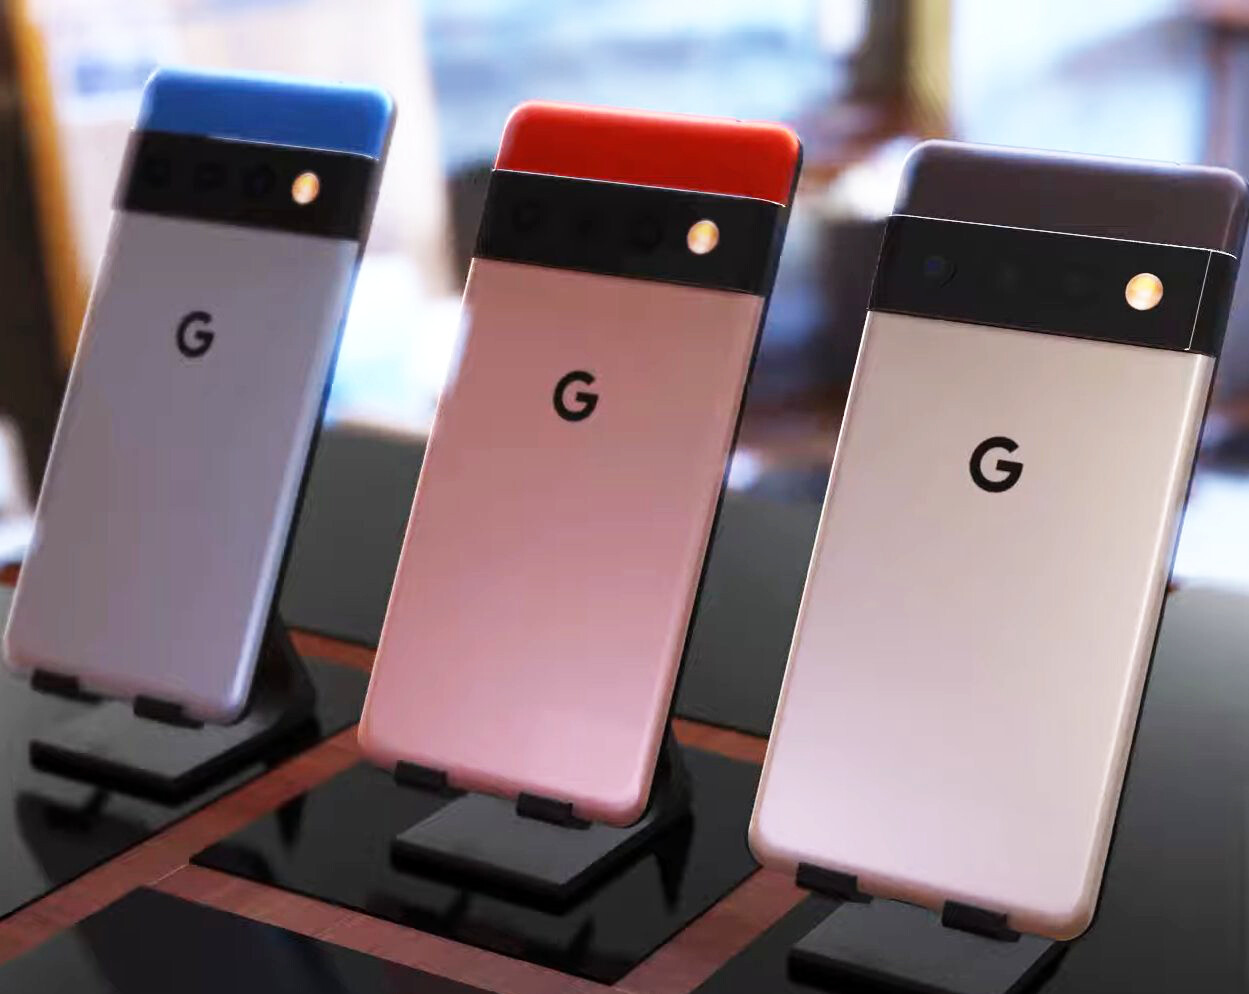 More details of the Pixel 6 series and Pixel 5a revealed; hardware, pricing, expected launch dates